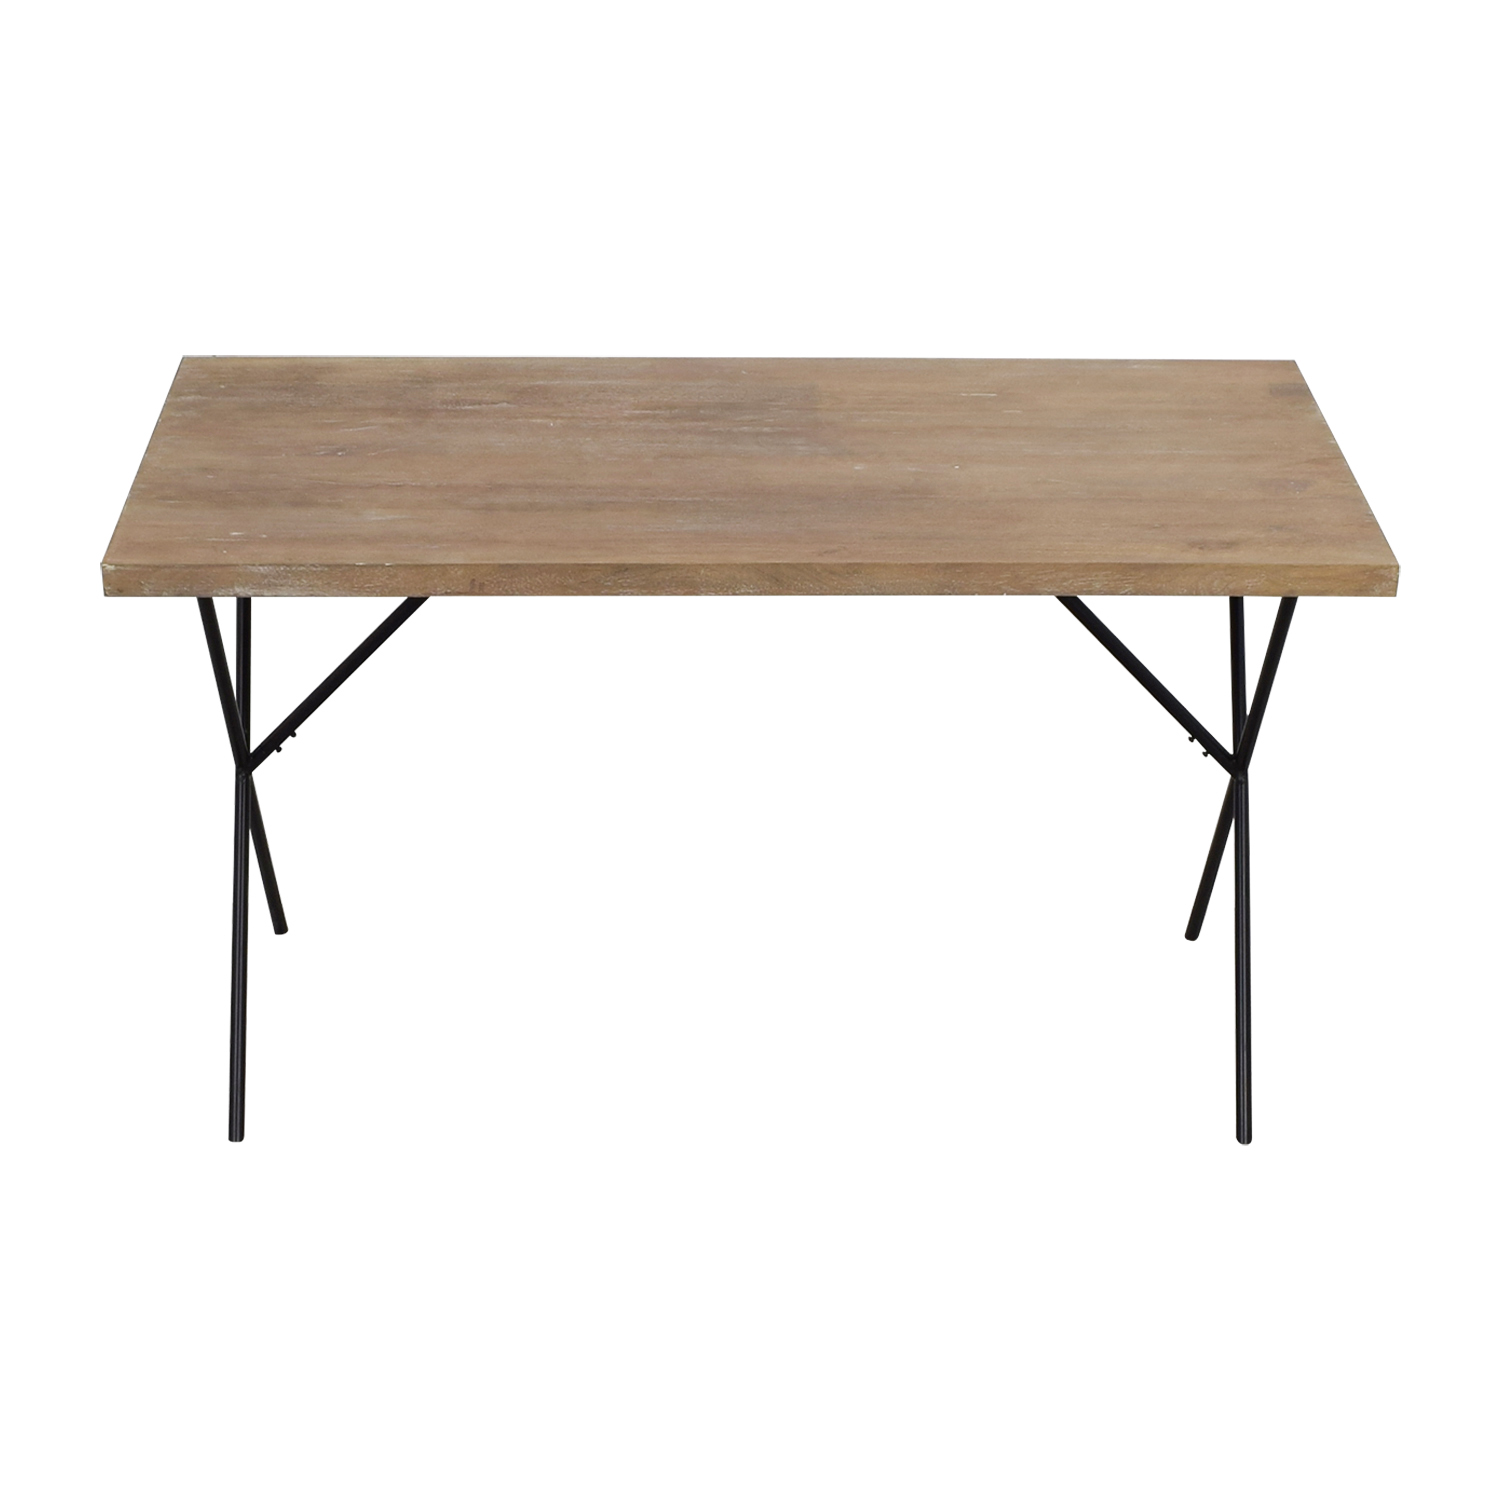 West Elm West Elm Metal Truss Work Table